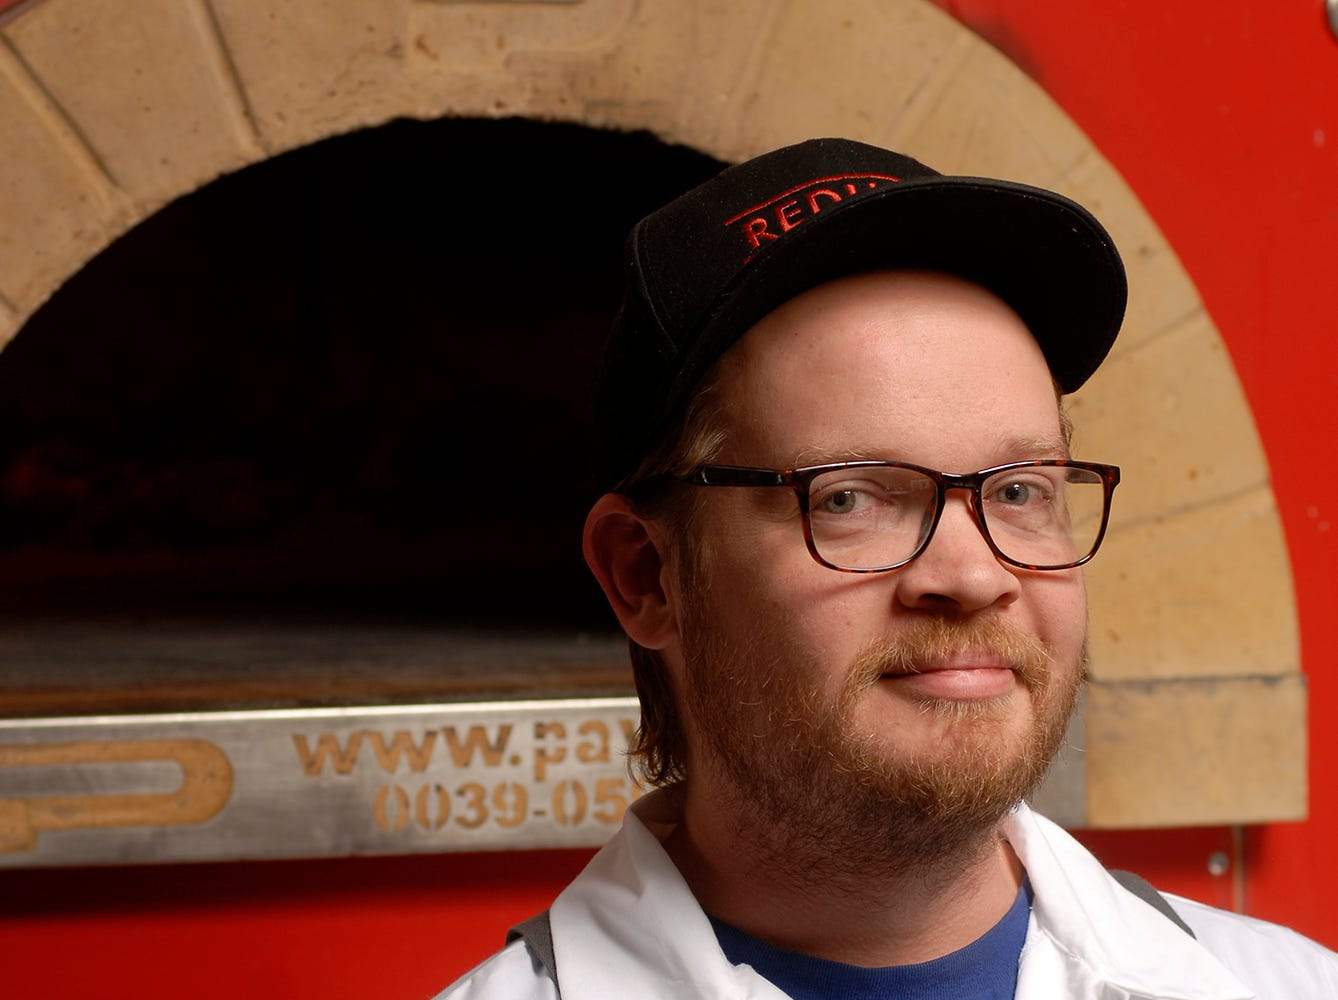 Chef Max Balliet specializes in handmade pastas and wood-fired pizzas at Pizza Lupo located at 1540 Frankfort Ave.  Nov. 16, 2018